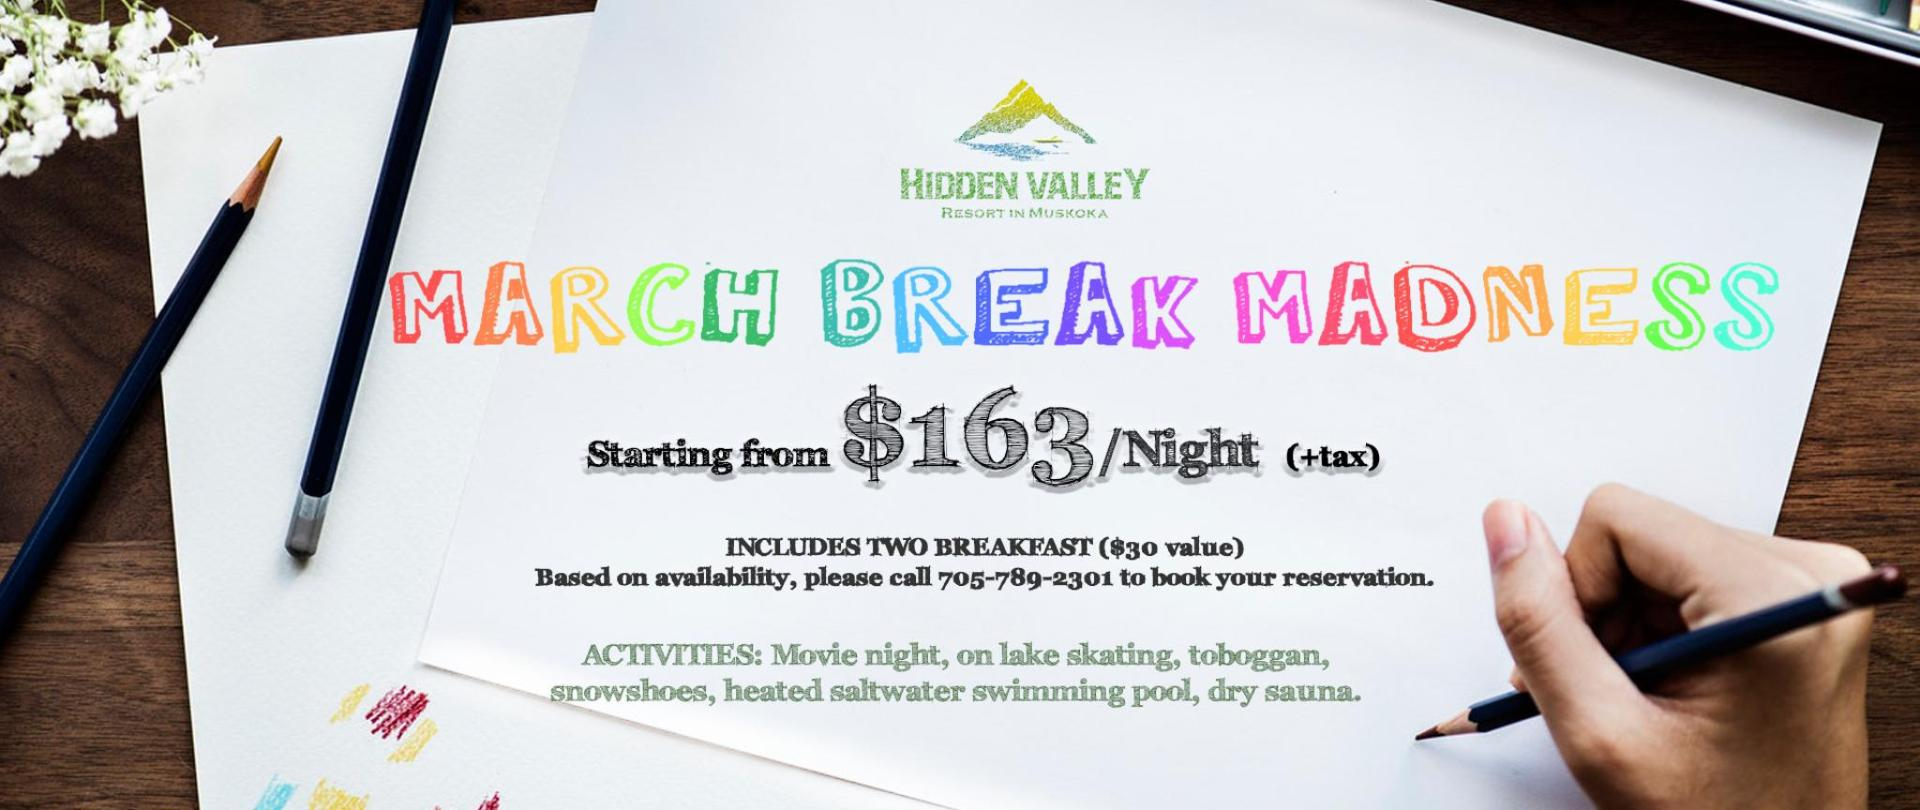 march break madness 5 1920 810.jpg